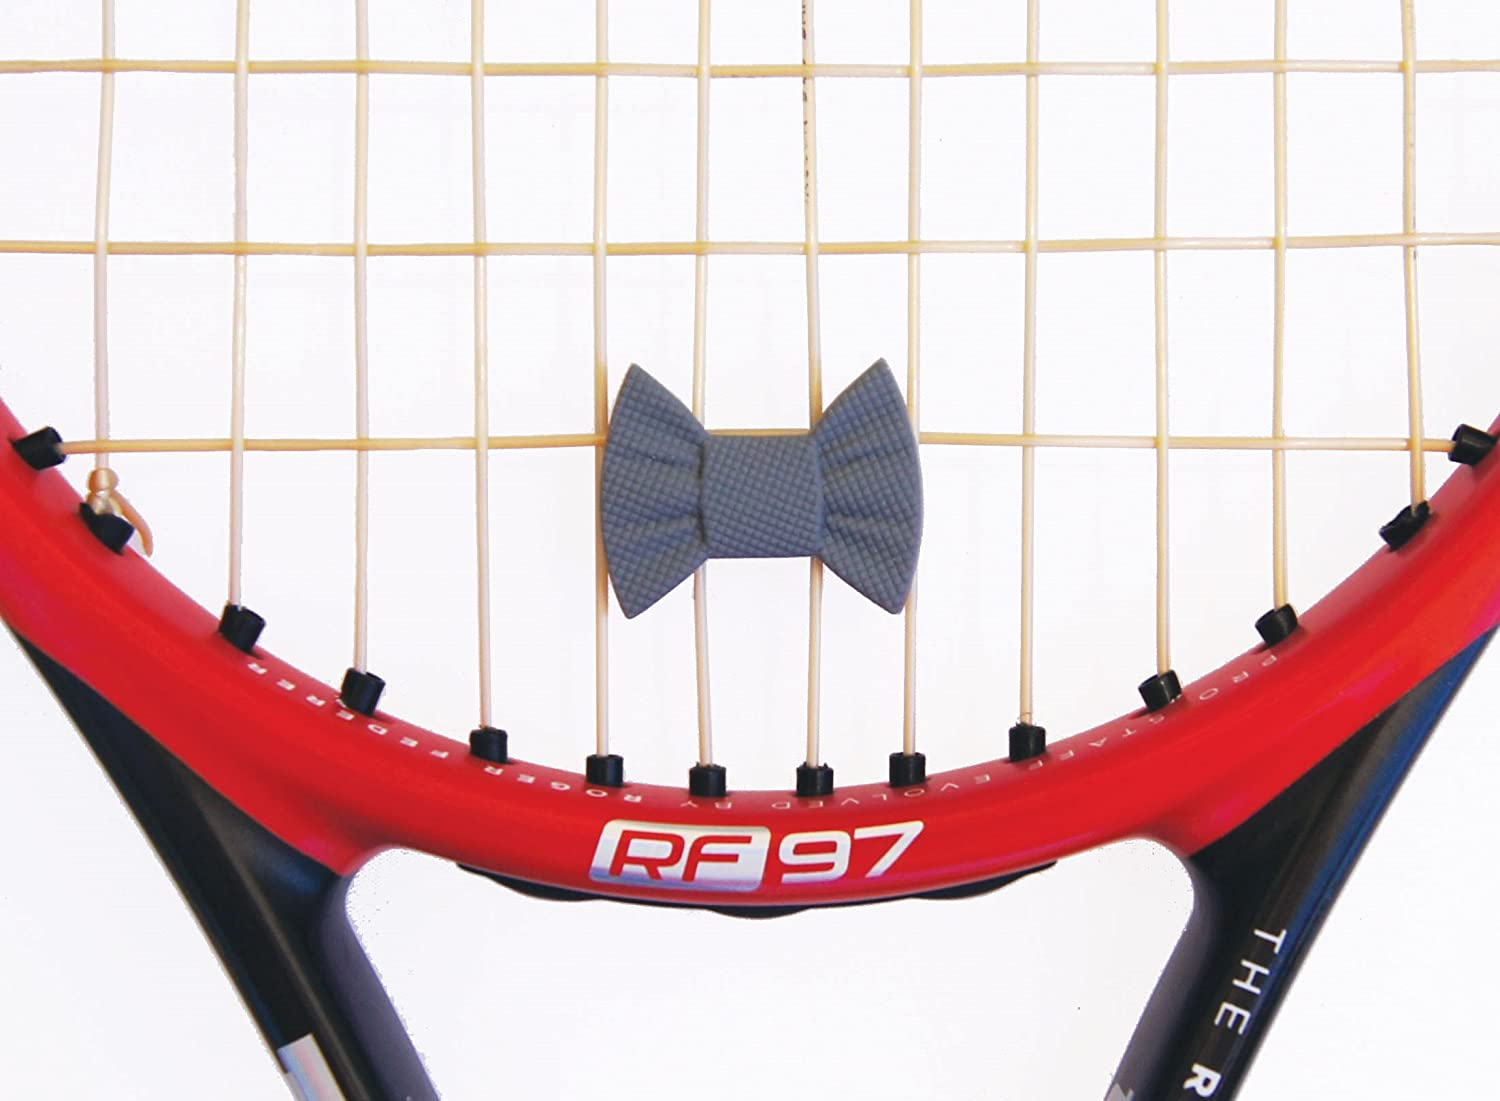 Amazon.com : Tennis Vibration Dampener- Set of 6-Tennis Shock Absorber For Strings- Bow Tie and Tie for Tennis Racket. Stylish- Long Lasting & Reliable- ...